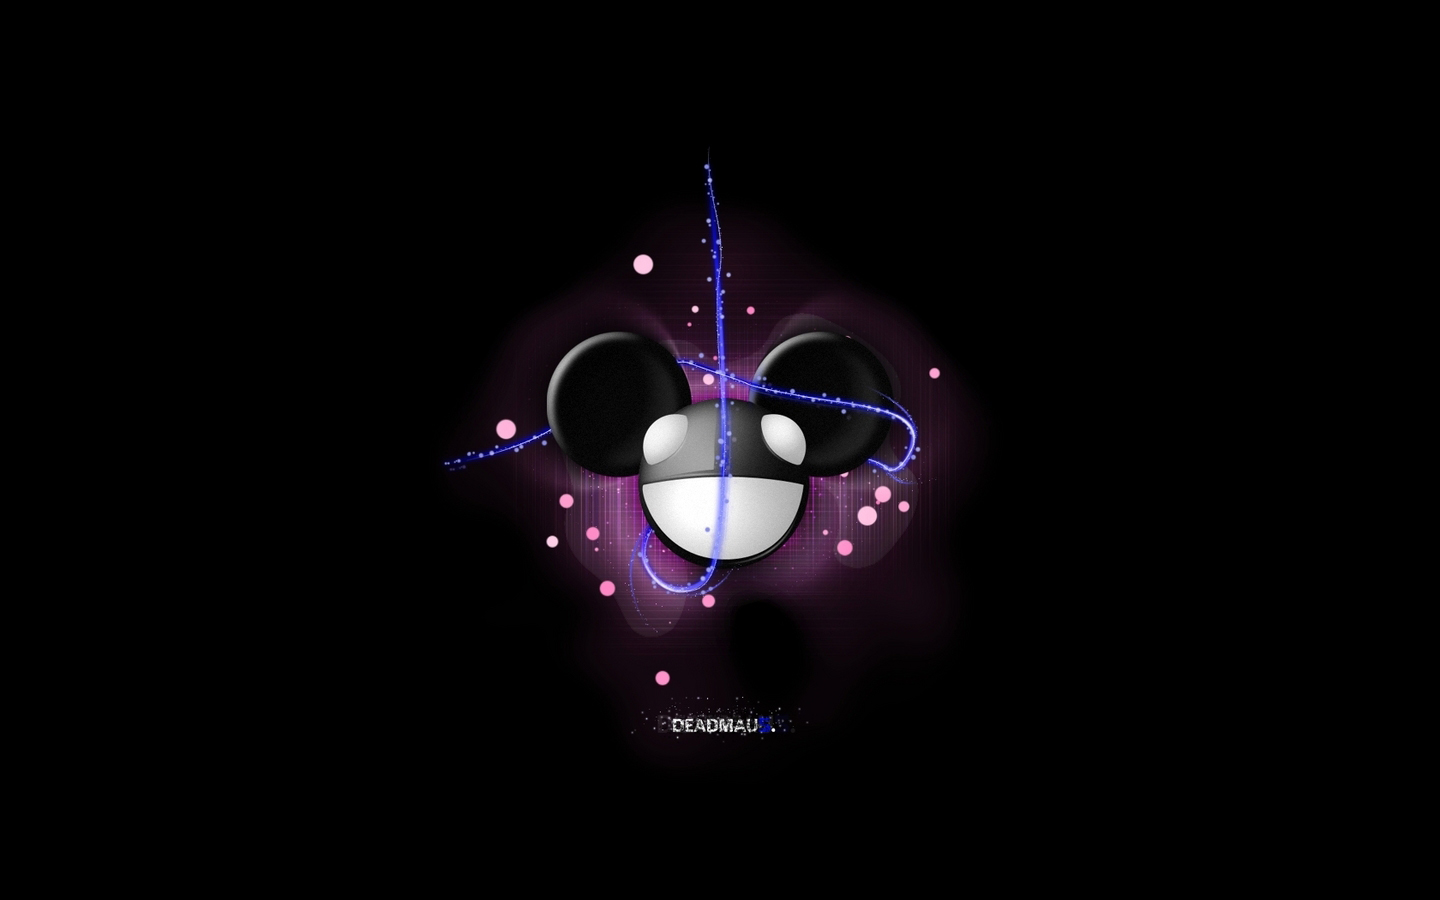 ... Deadmau5 Wallpaper · Deadmau5 Wallpaper HD